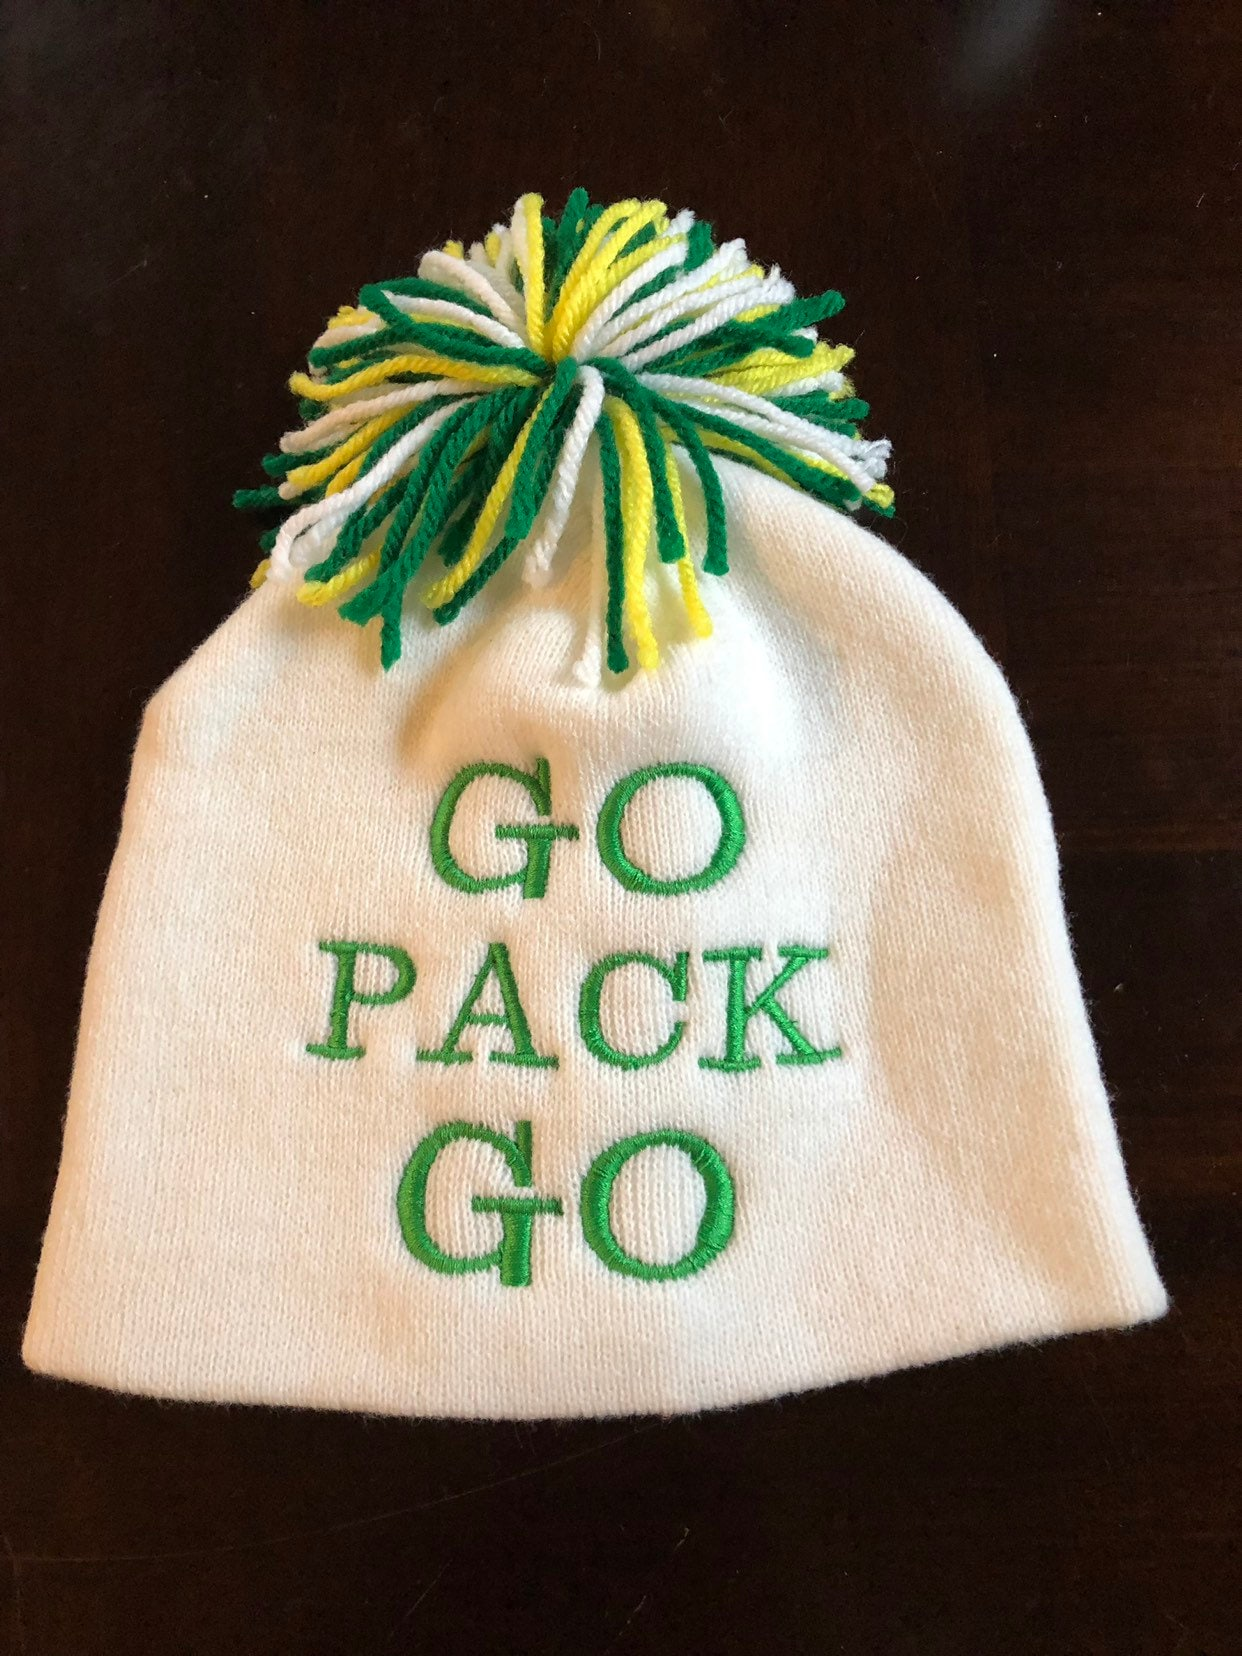 Go Pack Go winter hat Green Bay Packers NFL football aaron  79fdfb63632